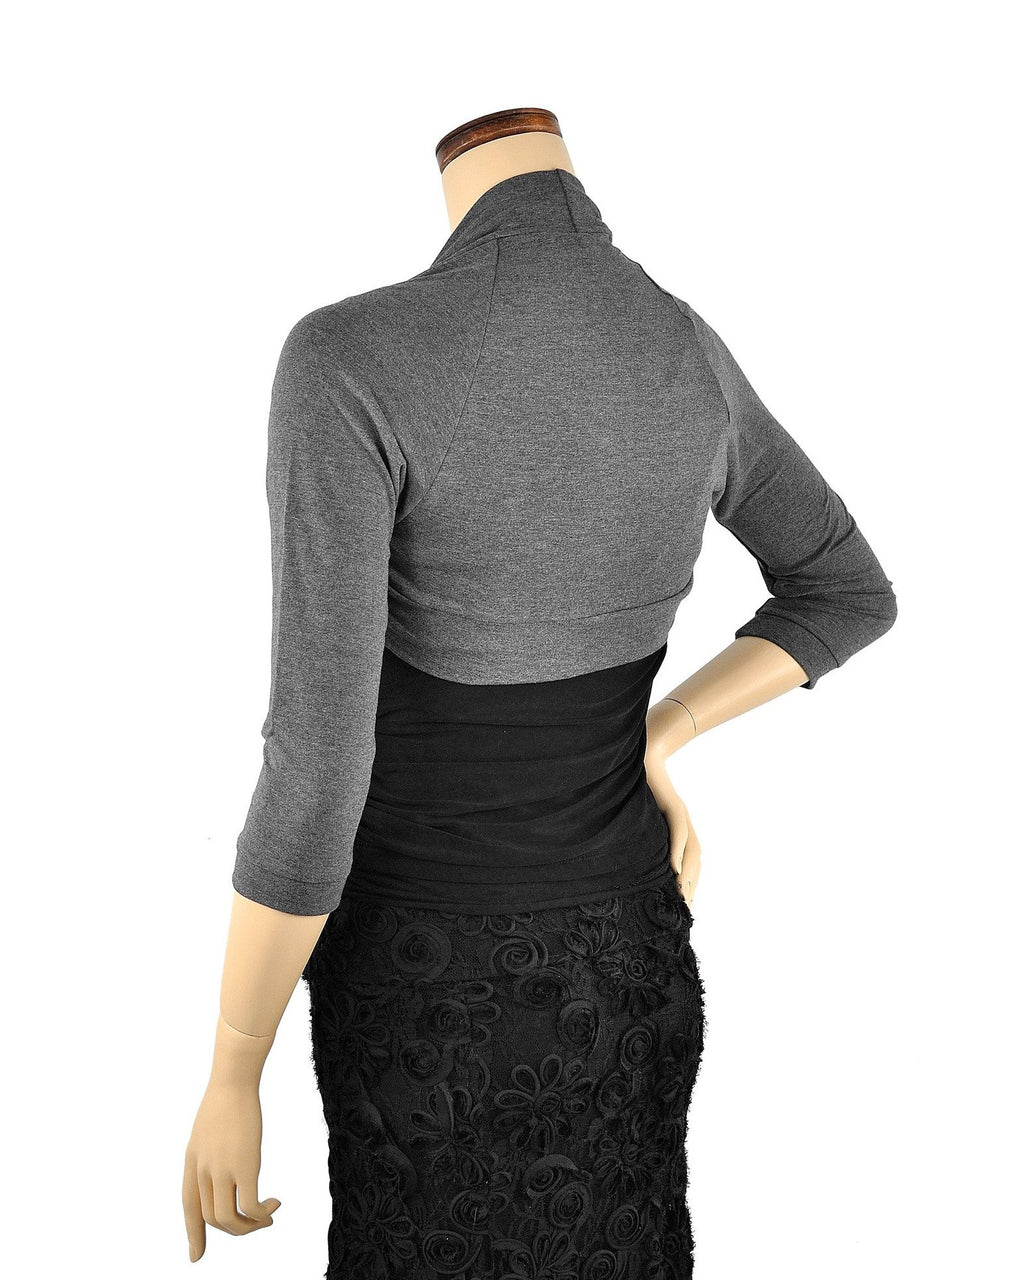 Bamboo Shrug - Gray 3/4 Sleeve